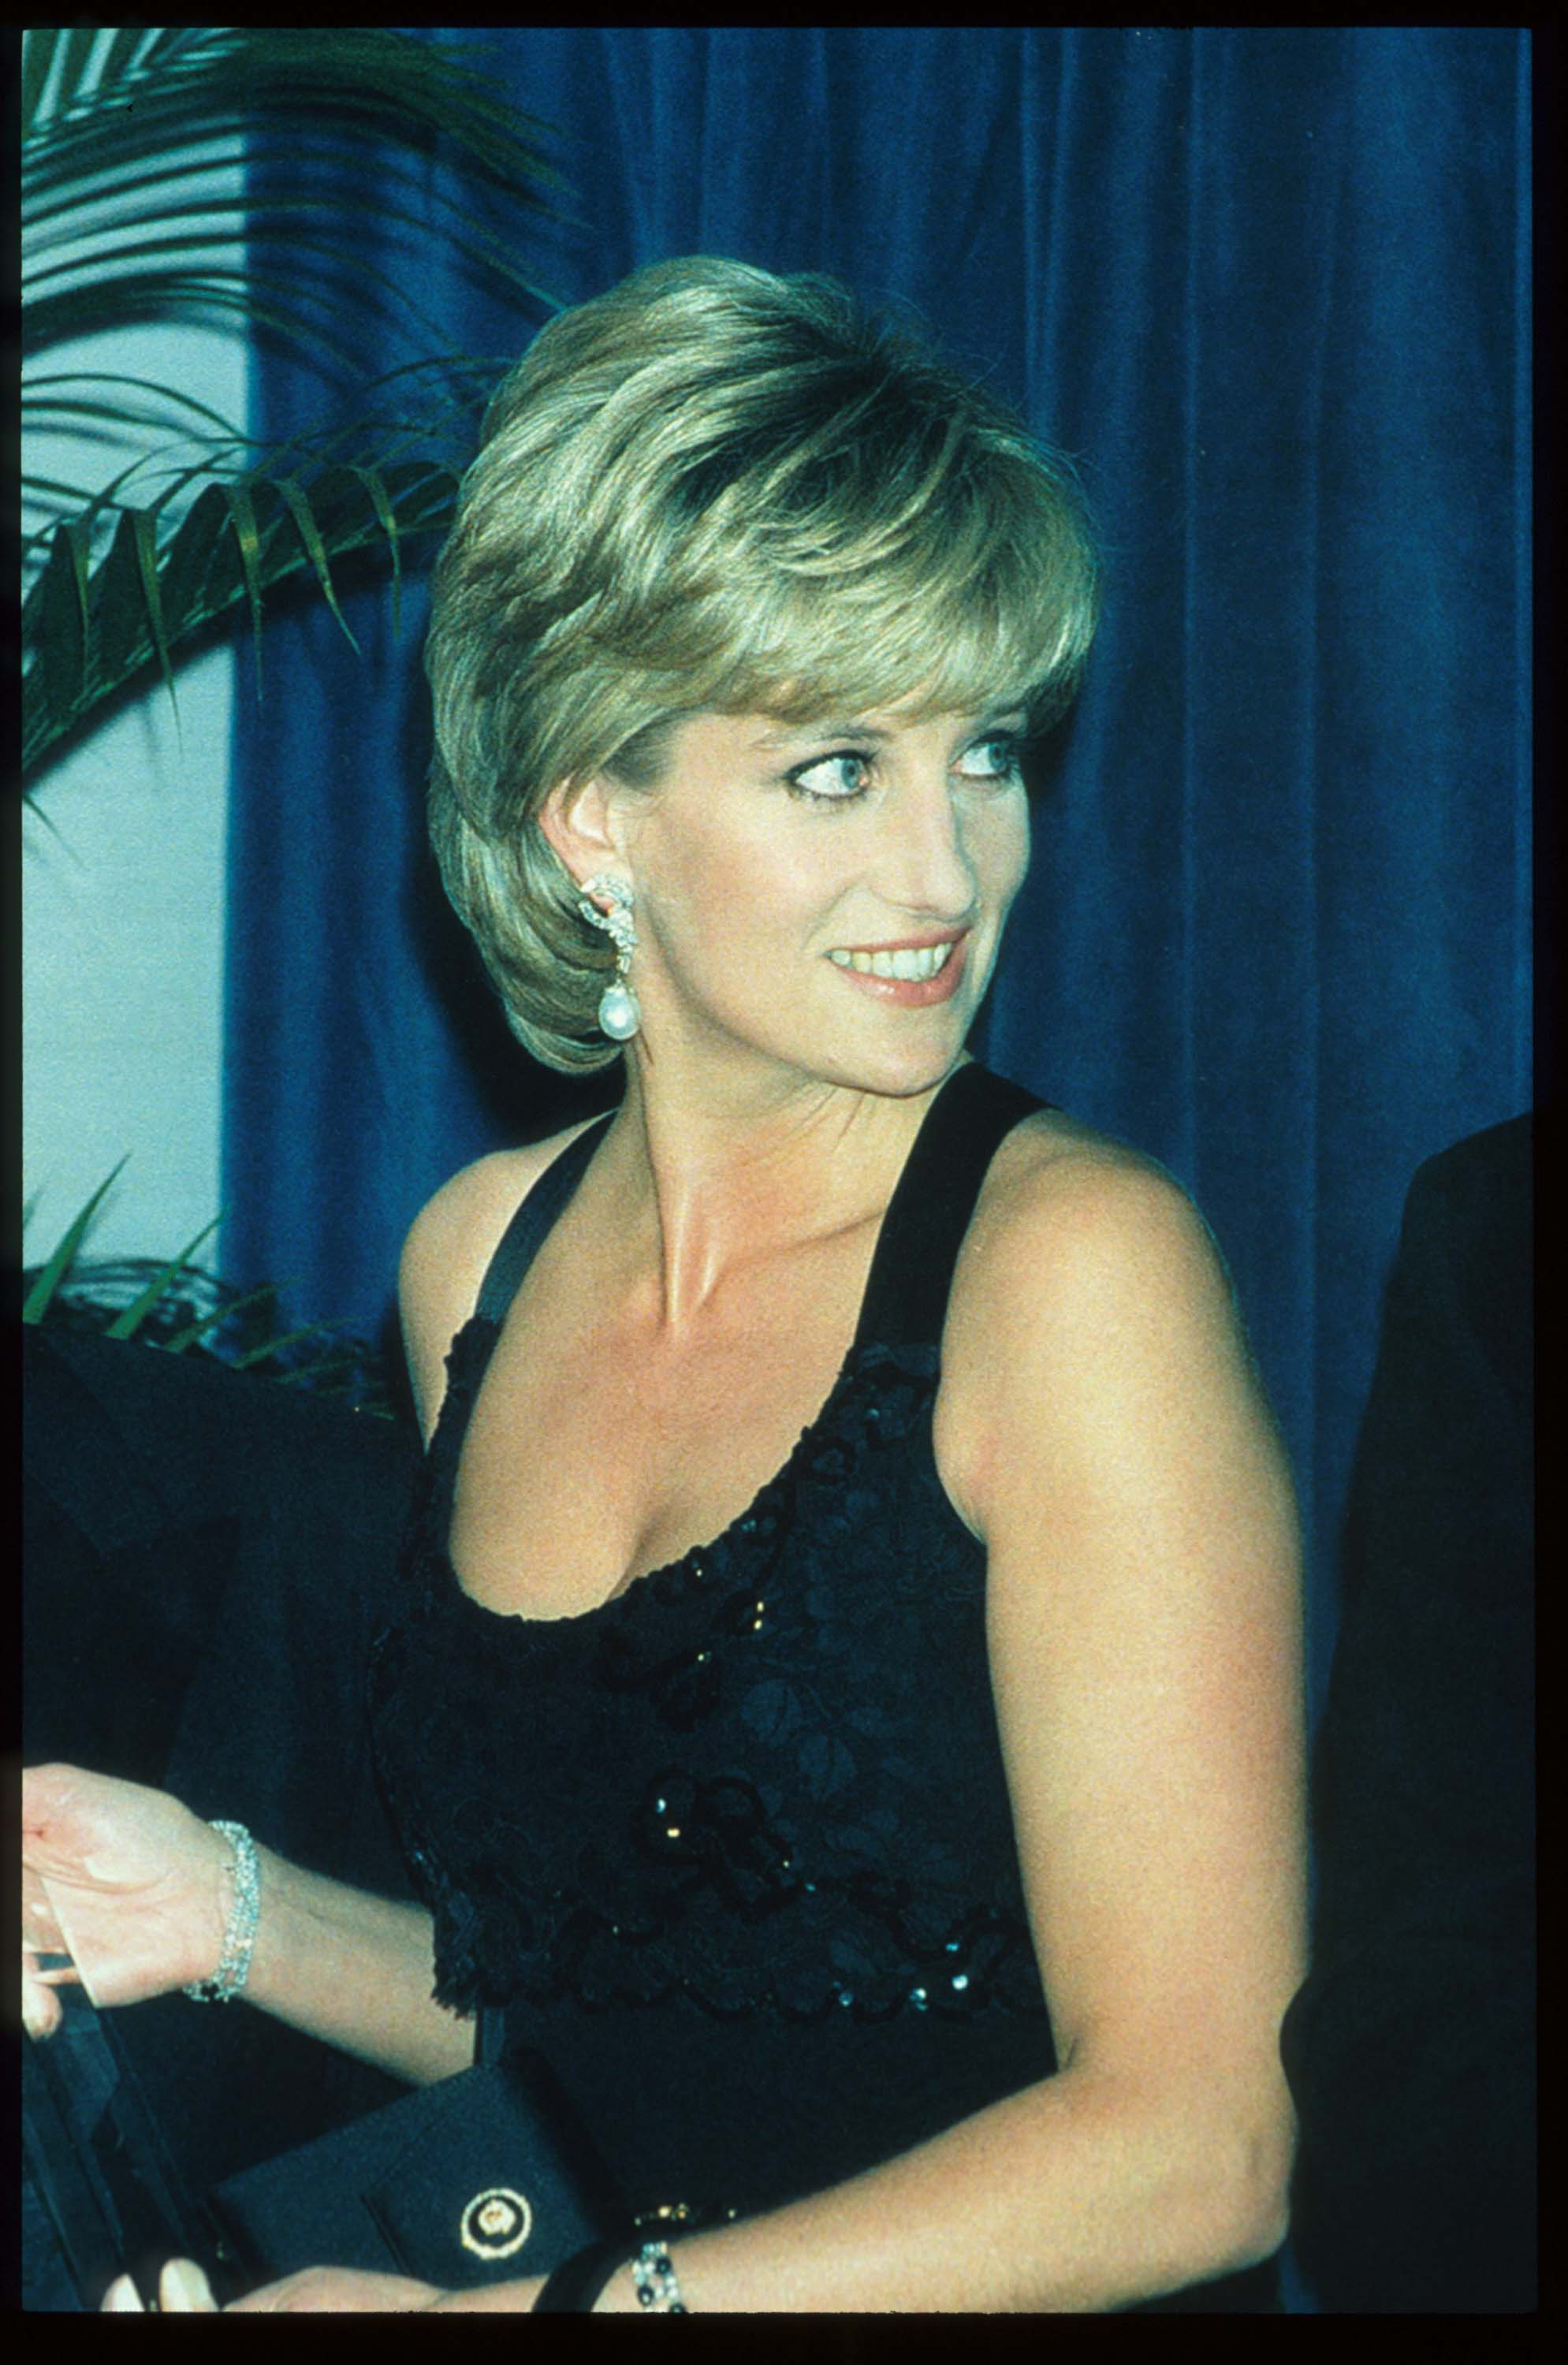 248217 03: Lady Diana Spencer stands at the 41st annual United Cerebral Palsy Awards gala December 11, 1995 in New York City. Lady Diana, the Princess of Wales, received the UCP Humanitarian Award at the fundraising evening. (Photo by Pool/Liaison)